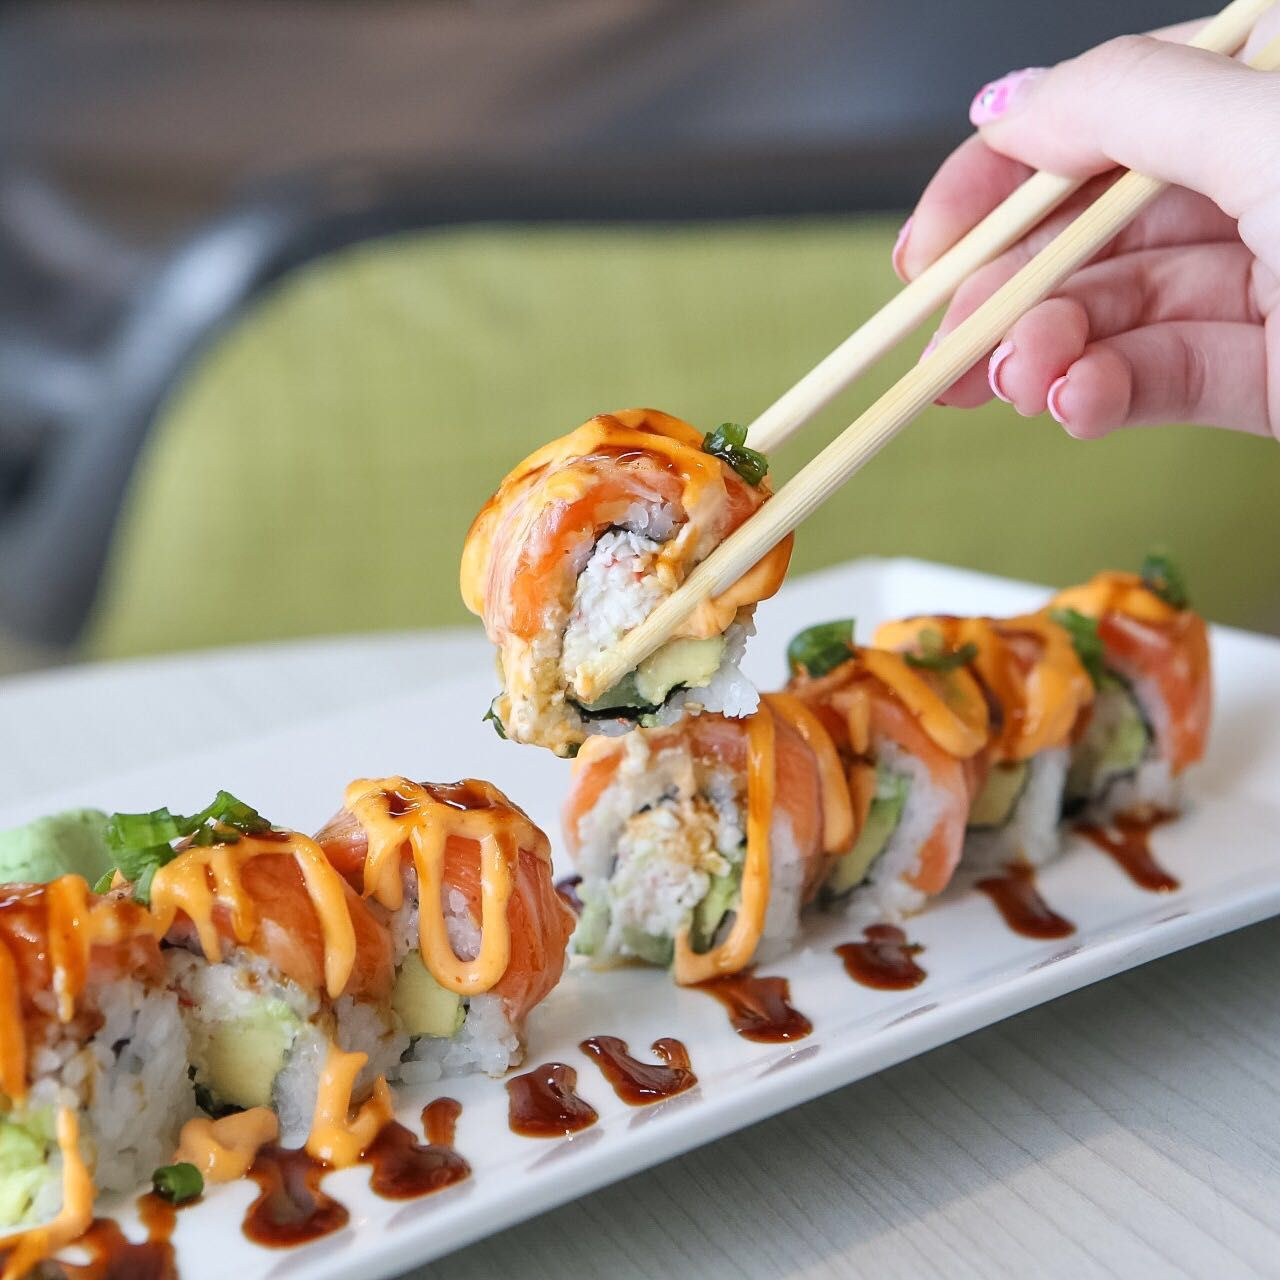 Treat yourself to delicious sushi and Japanese cuisine at @Chaya Restaurant. Have a bite of the Alaska roll filled with smoked salmon, crab mix, rice, and nori. Compliment it with a cold sake. Catch your yummy meal in the new Tom Bradley International Terminal (TBIT). #LAXEats [PIC] @hangrydiary #losangeles #food #LAX